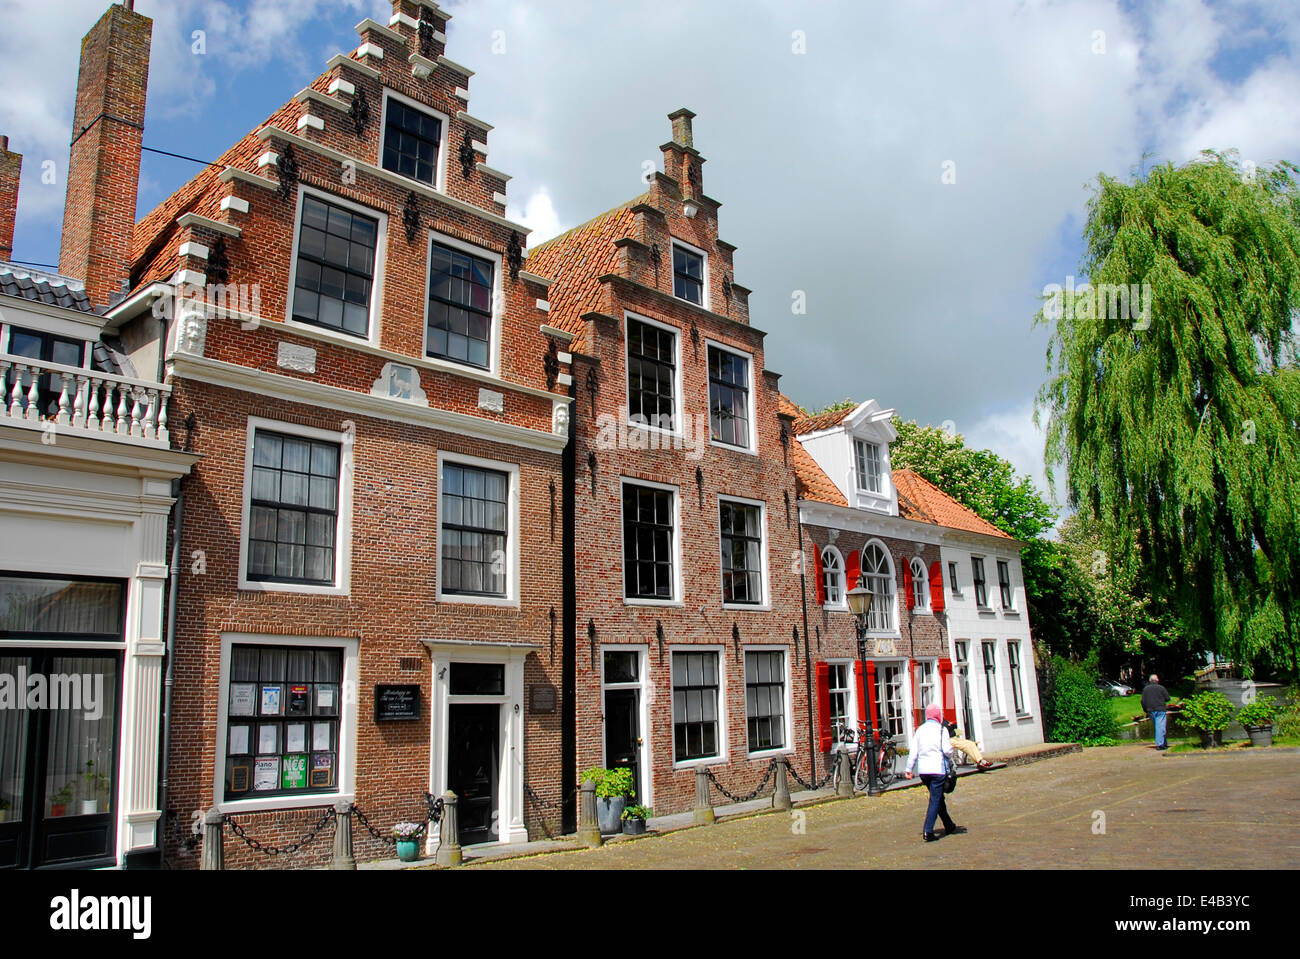 Town of Edam, Netherlands - Stock Image